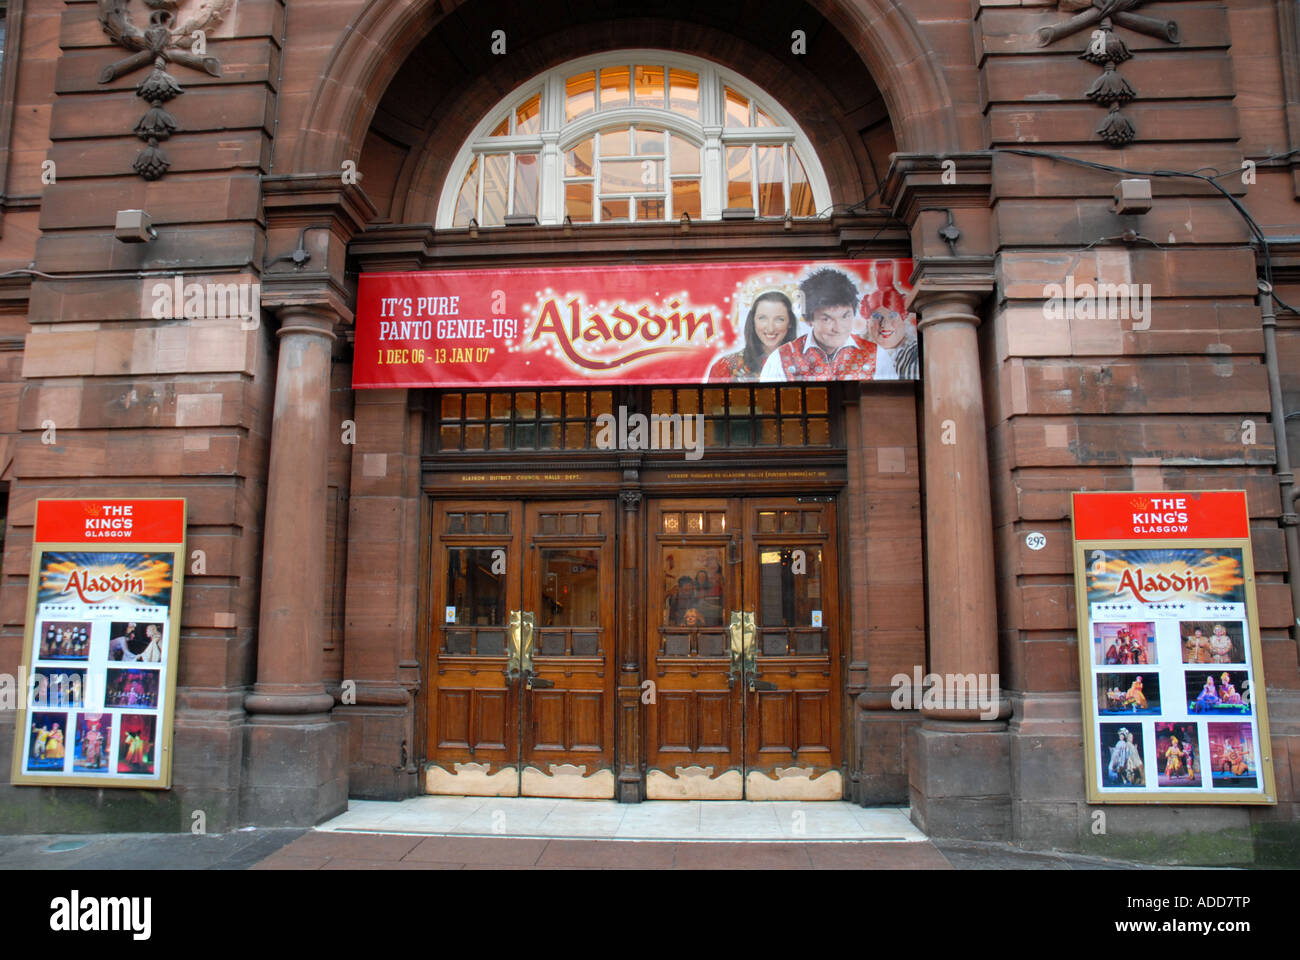 Entrance Doors to the Historic Kings Theatre Showing Pantomime \u0027Aladdin\u0027 Bath Street Glasgow Strathclyde Scotland & Entrance Doors to the Historic Kings Theatre Showing Pantomime ...